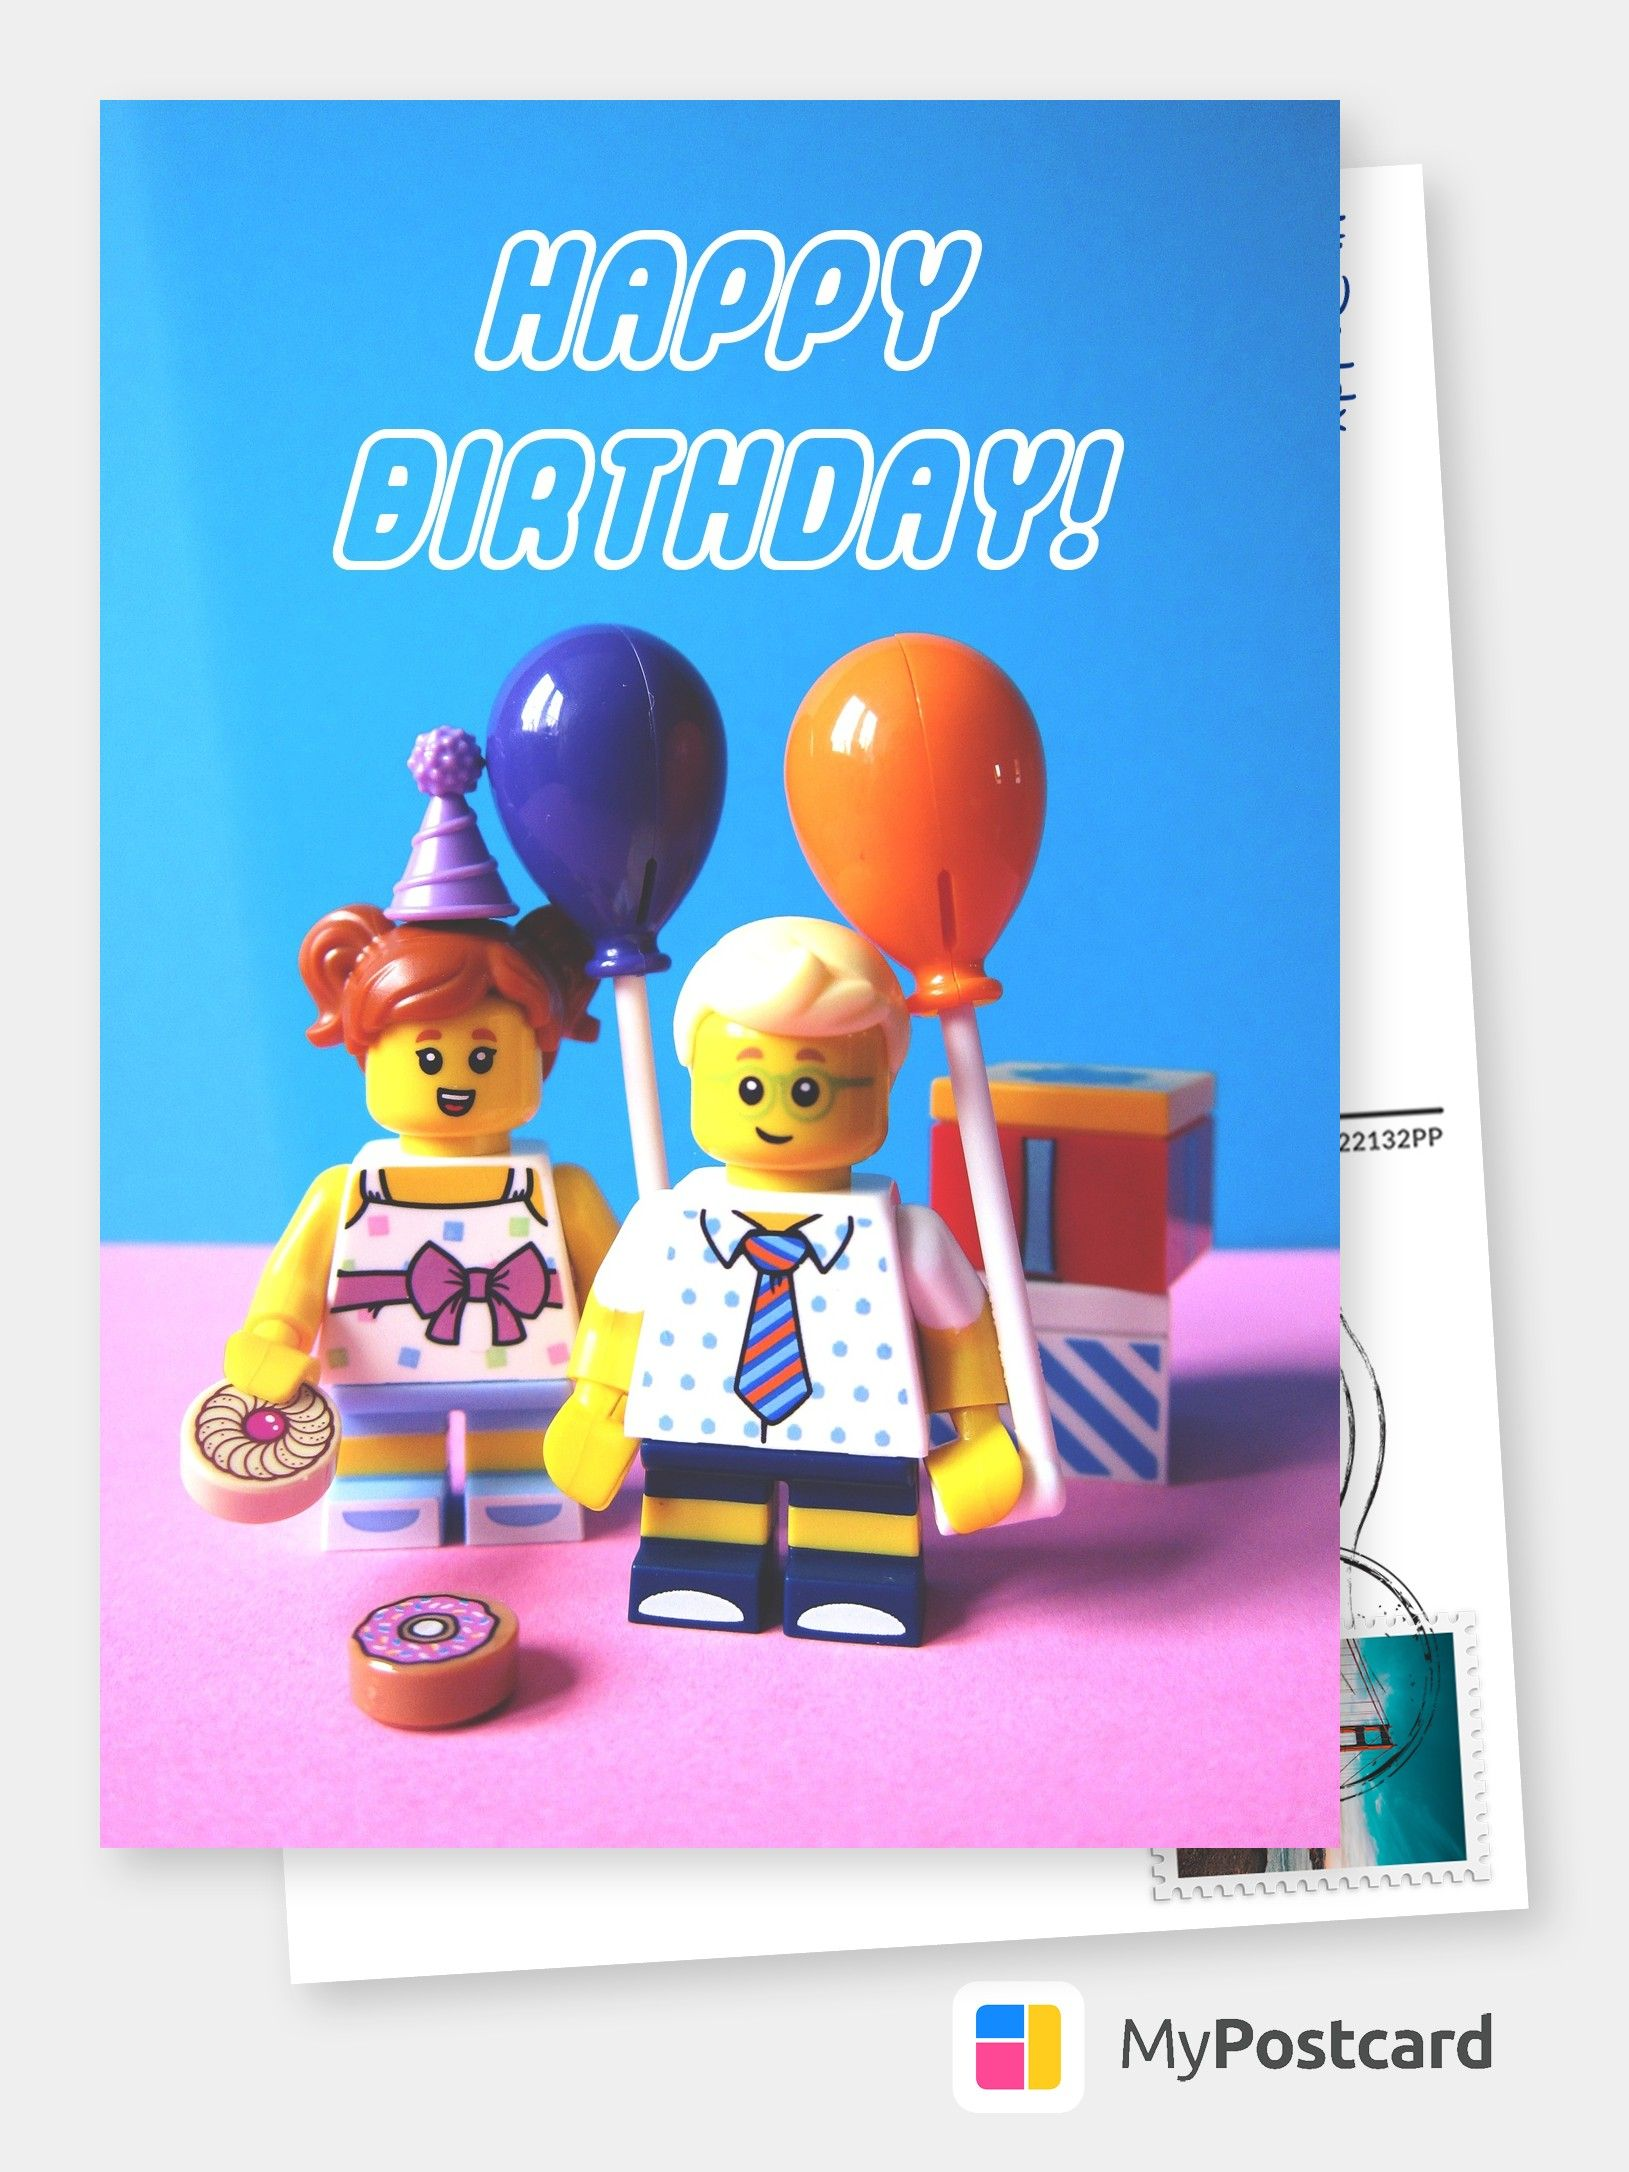 Lego Happy Birthday Birthday Cards Quotes Send Real Postcards Online Birthday Card Sayings Happy Birthday Minions Funny Greeting Cards